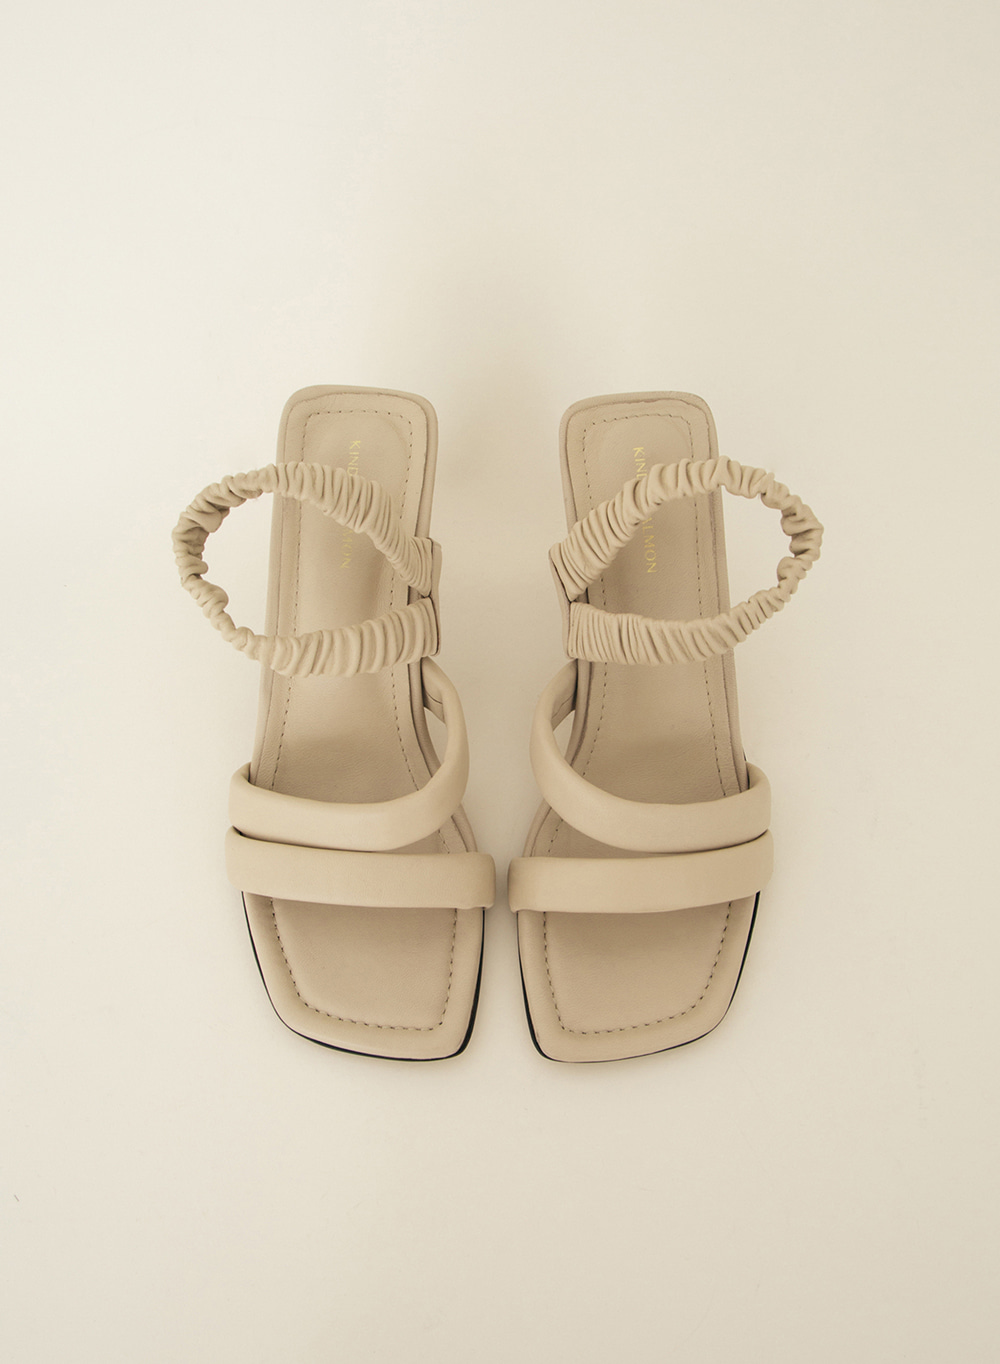 SS21 Ruched Strap Sandals Beige